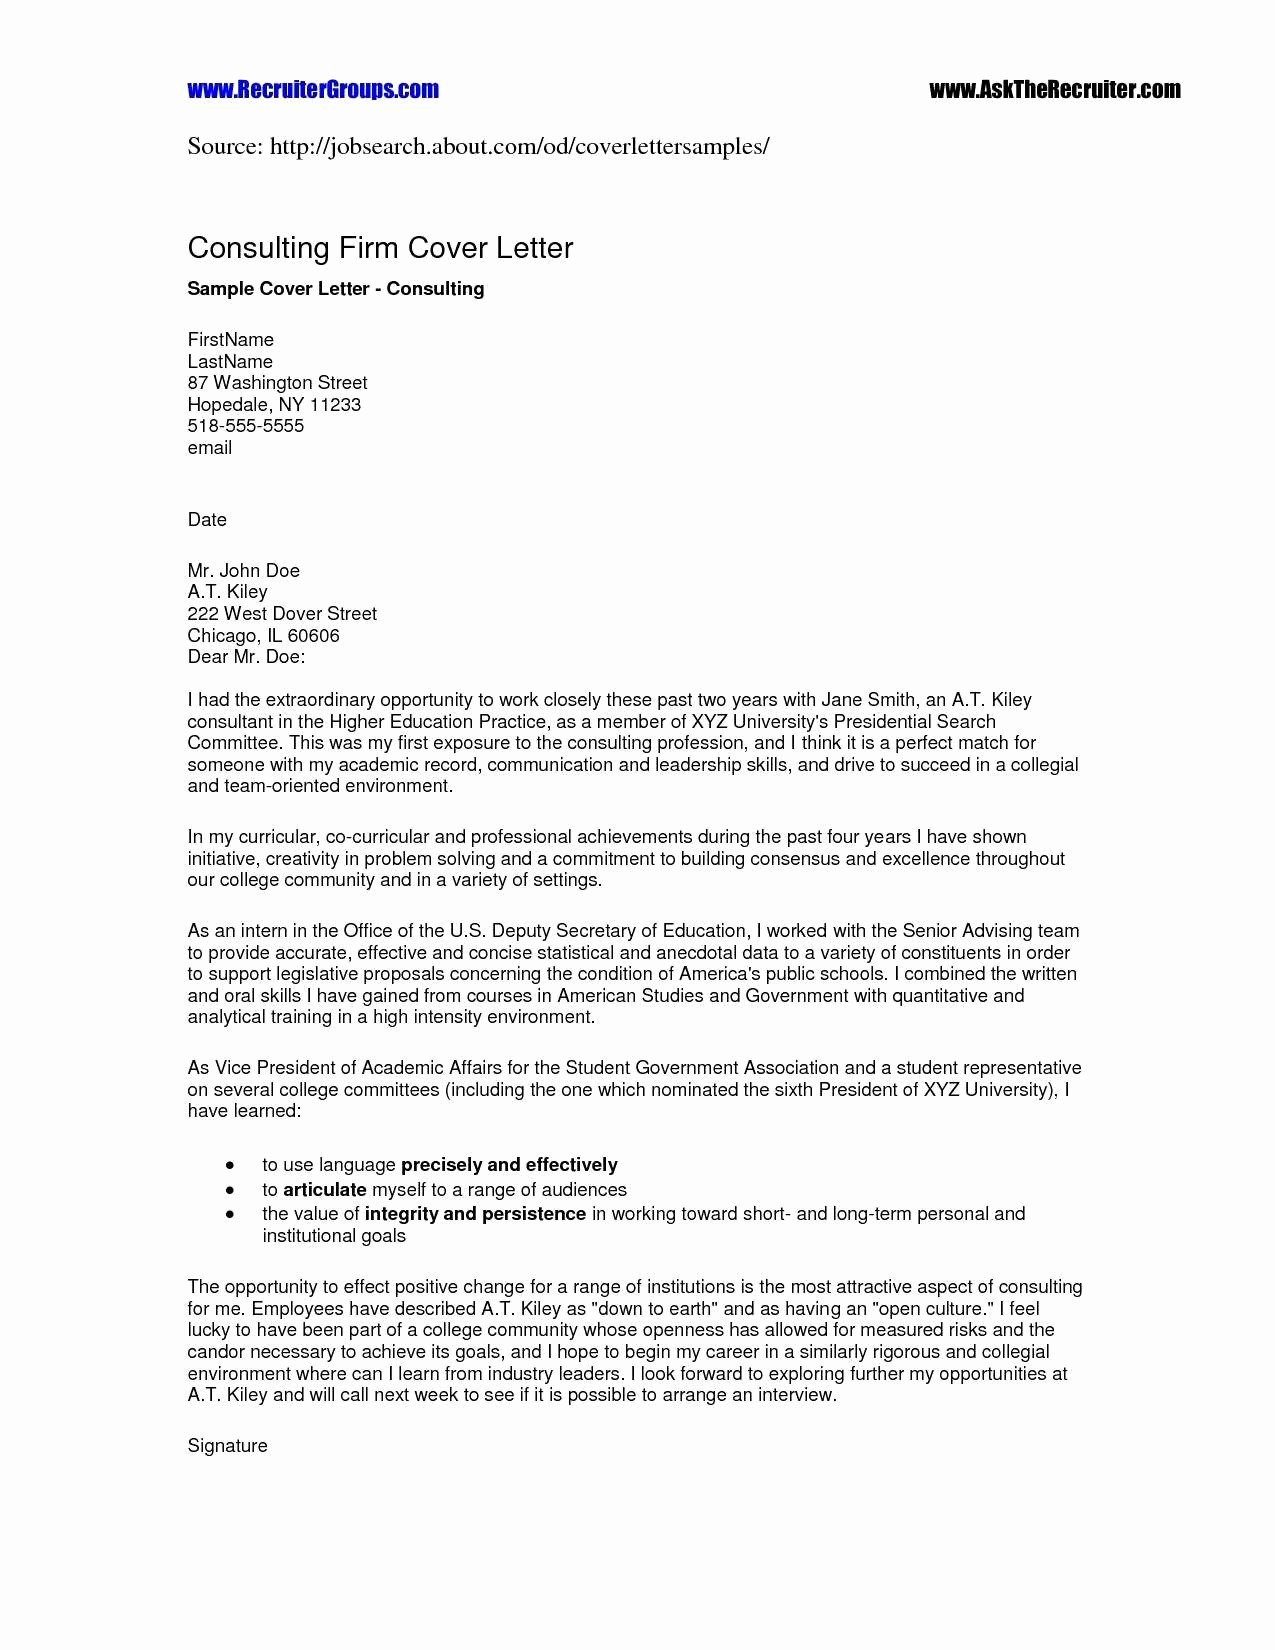 Letter Of Understanding Template - Business Loan Agreement Template Save Msp Contract Template Elegant